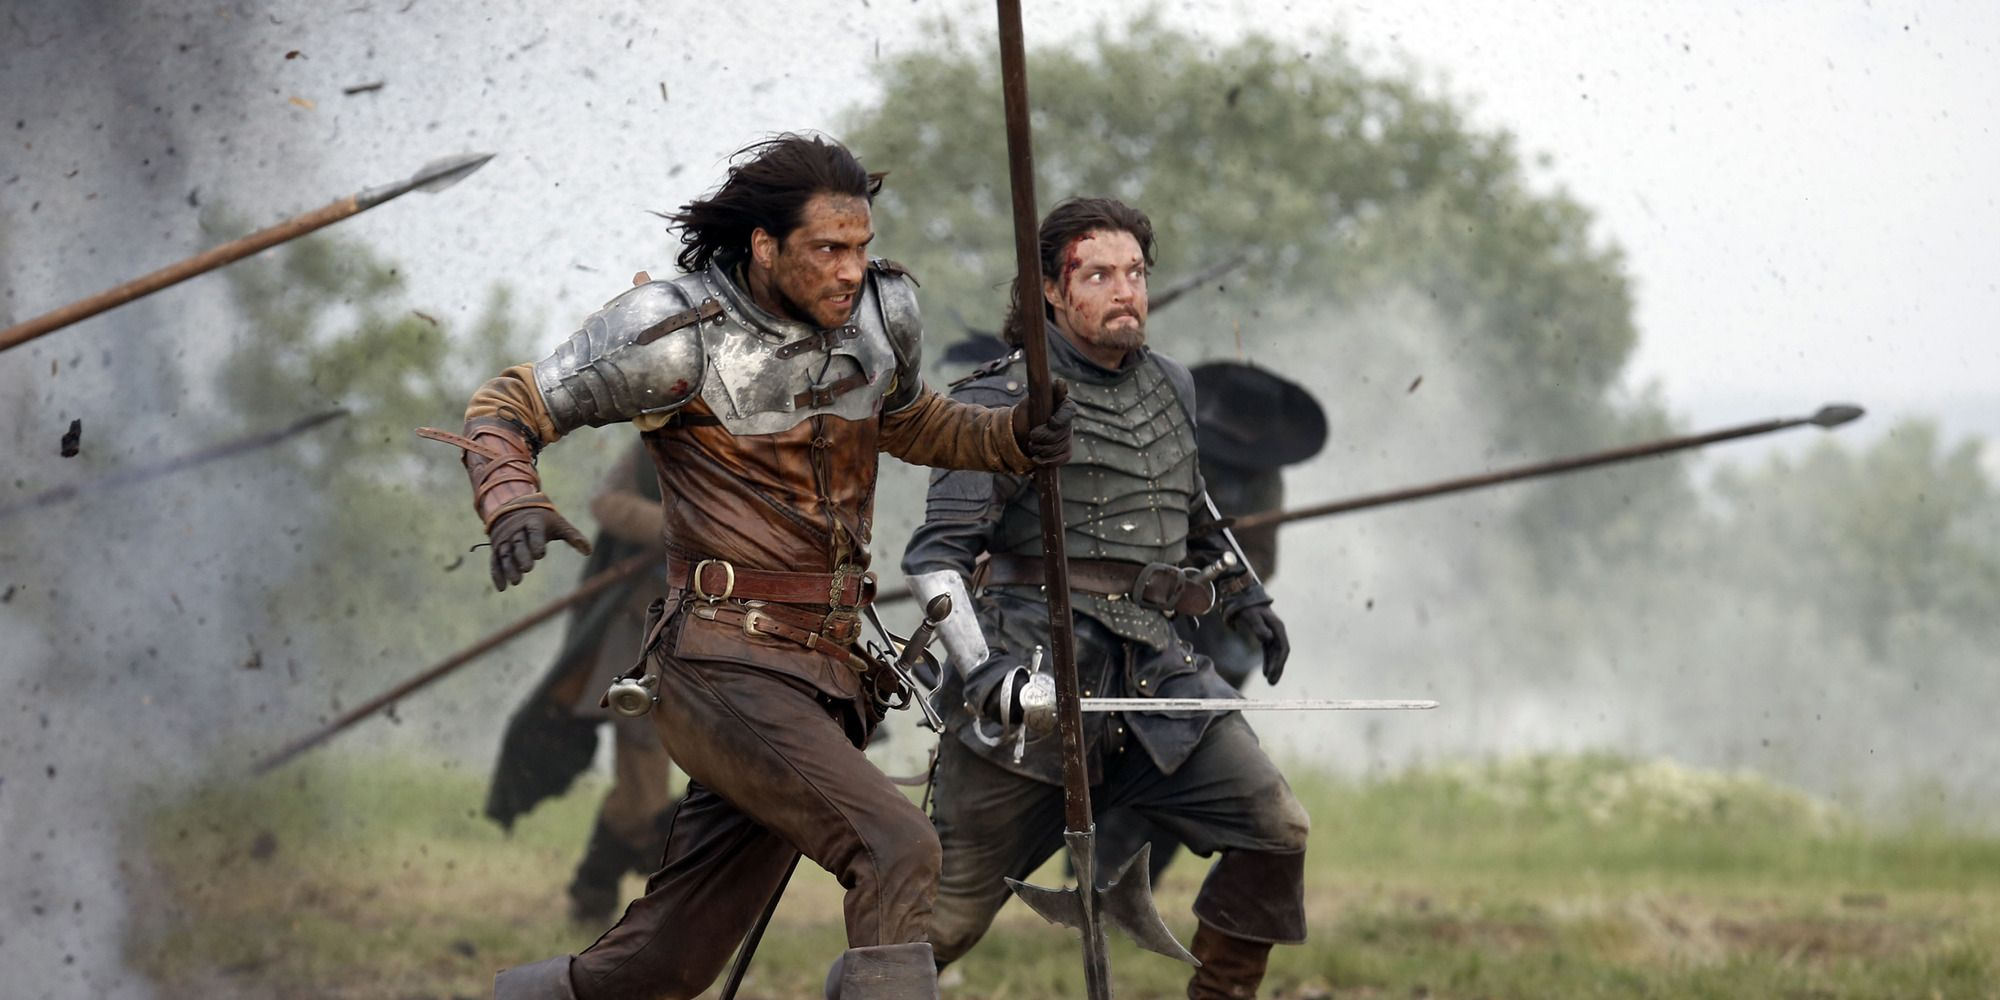 The Musketeers s03e01